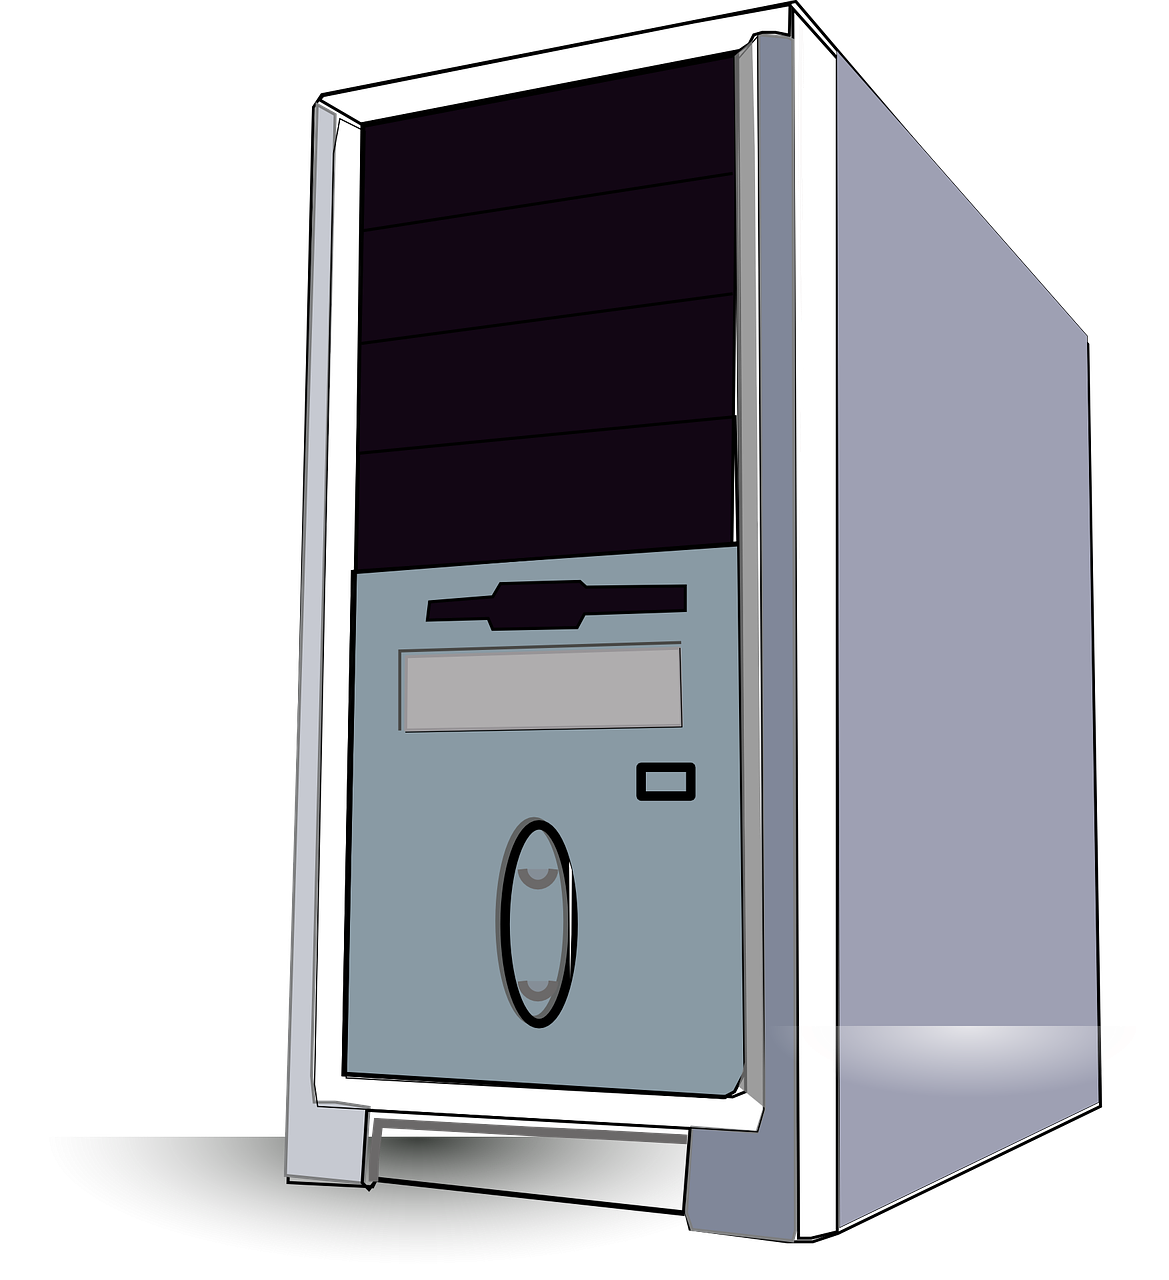 Pc tower clipart.